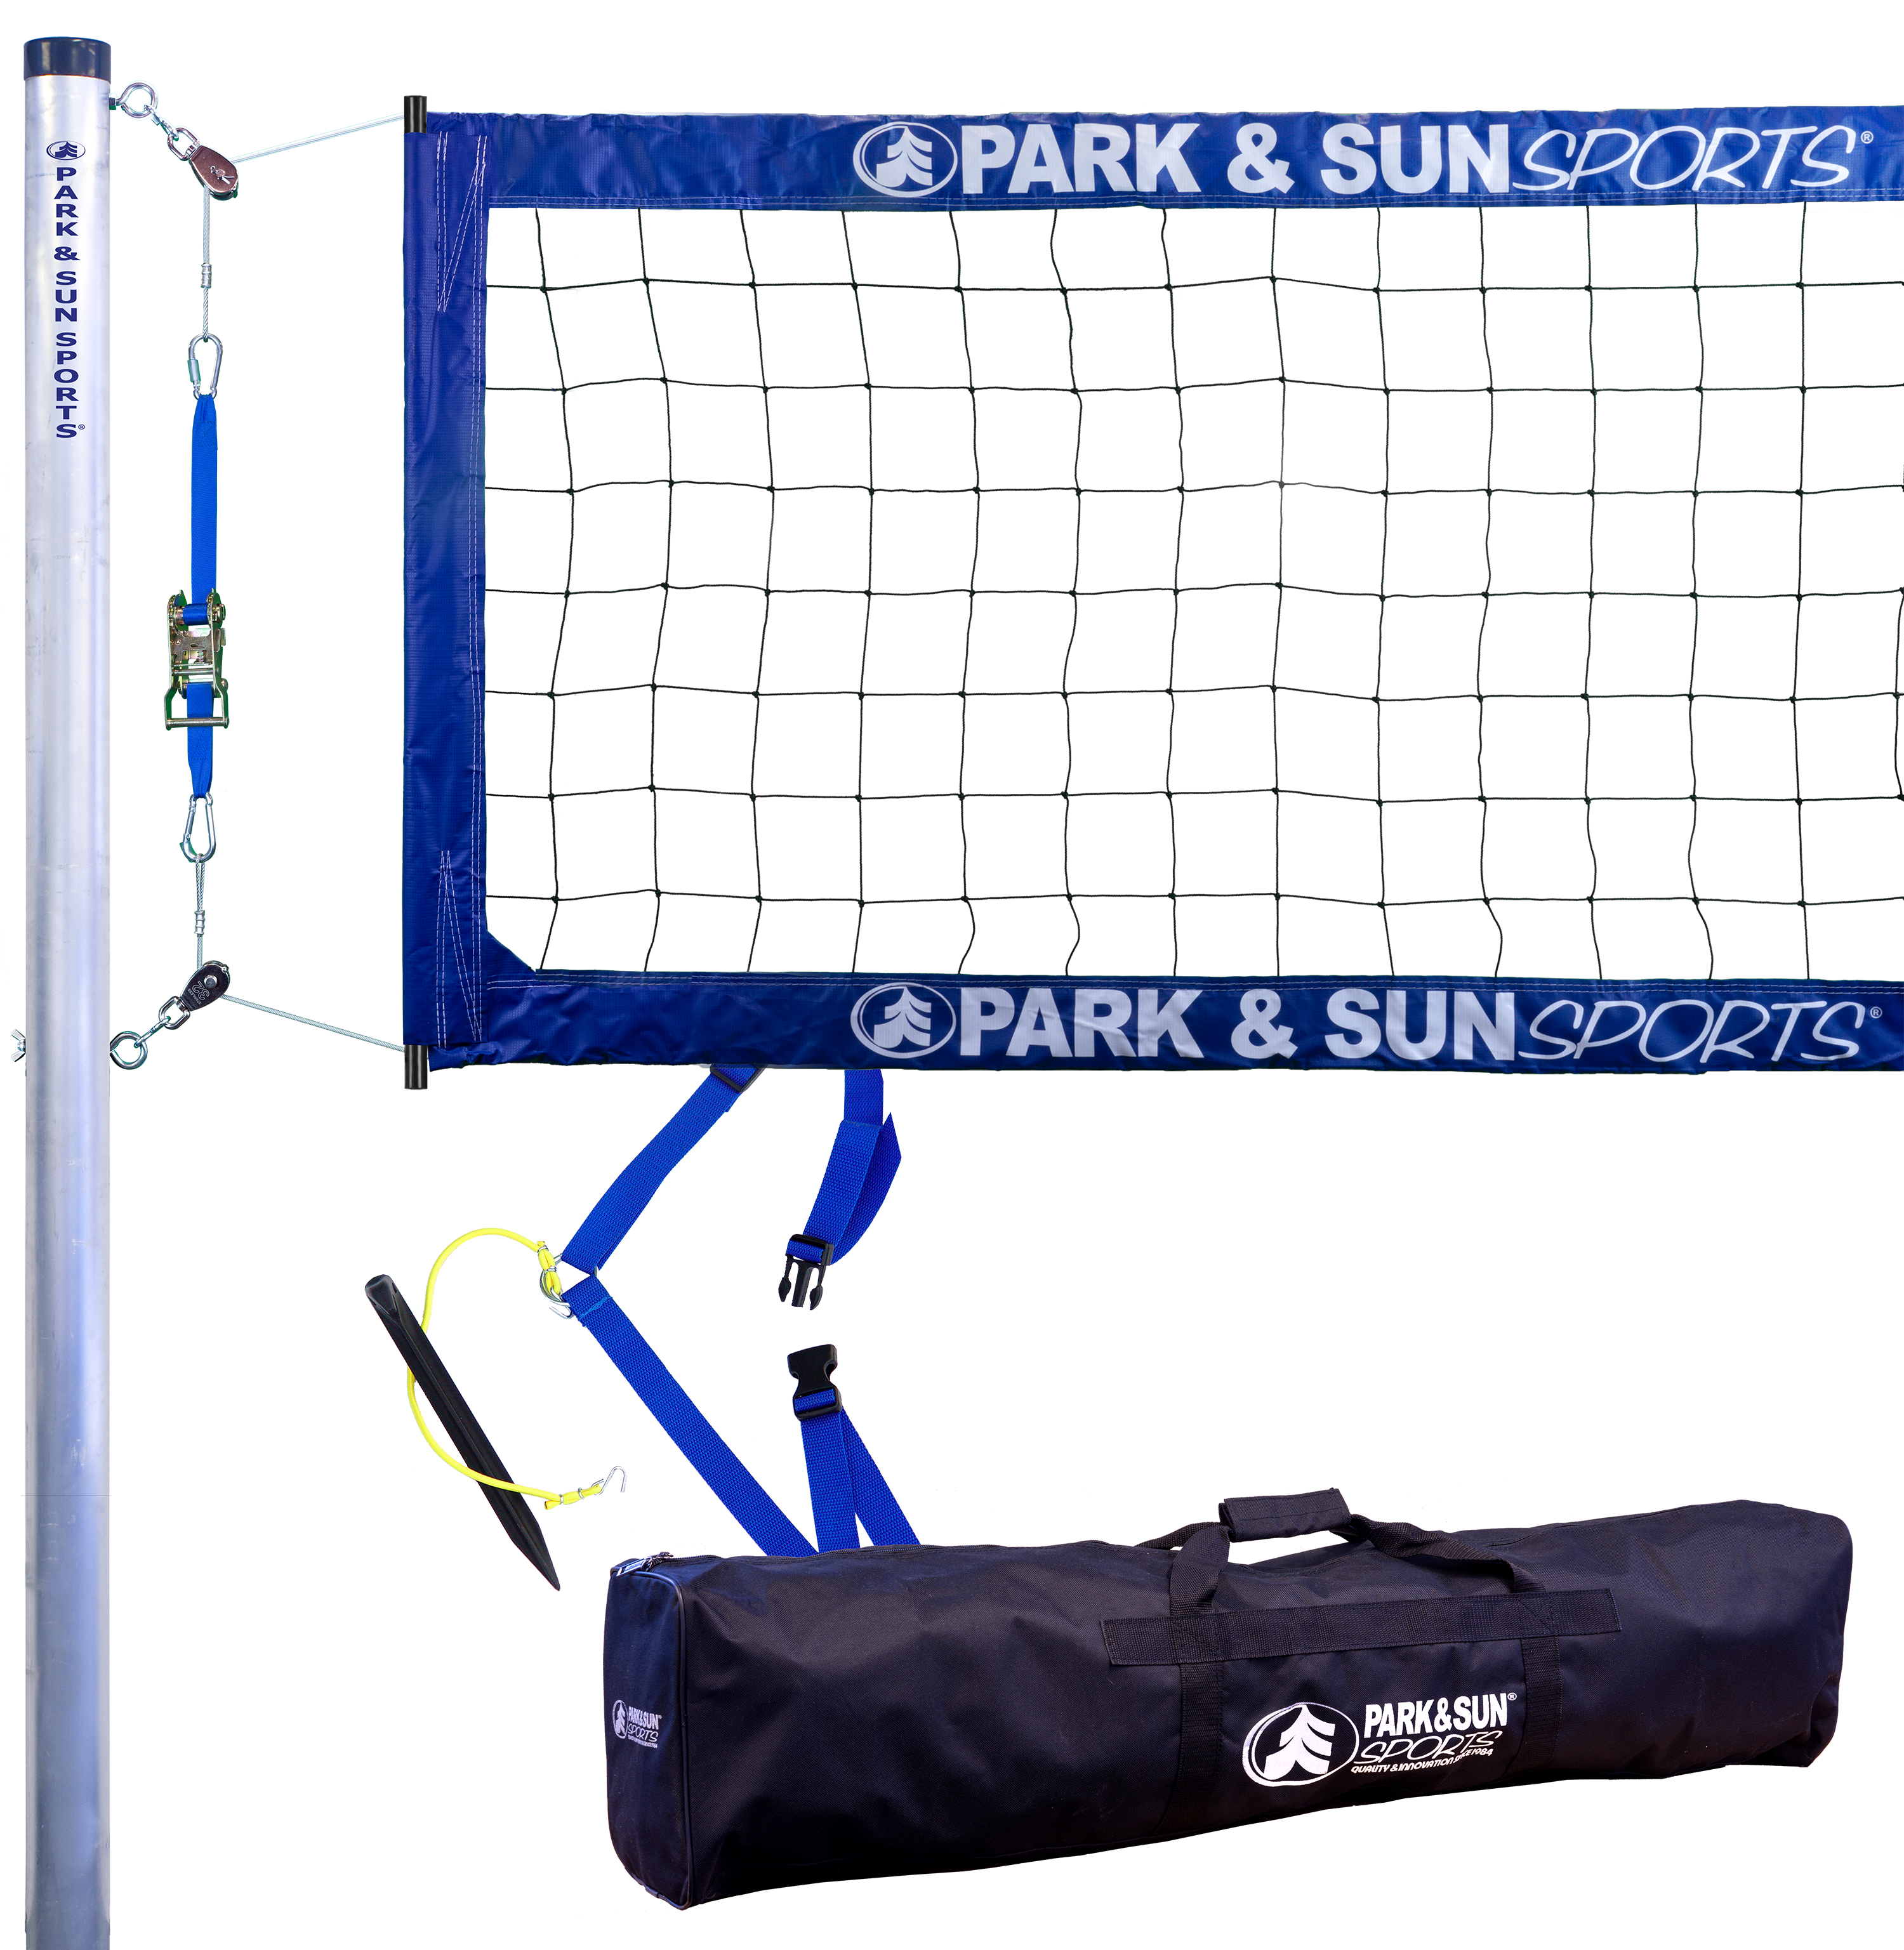 Park and Sports Tournament 4000 Product Layout